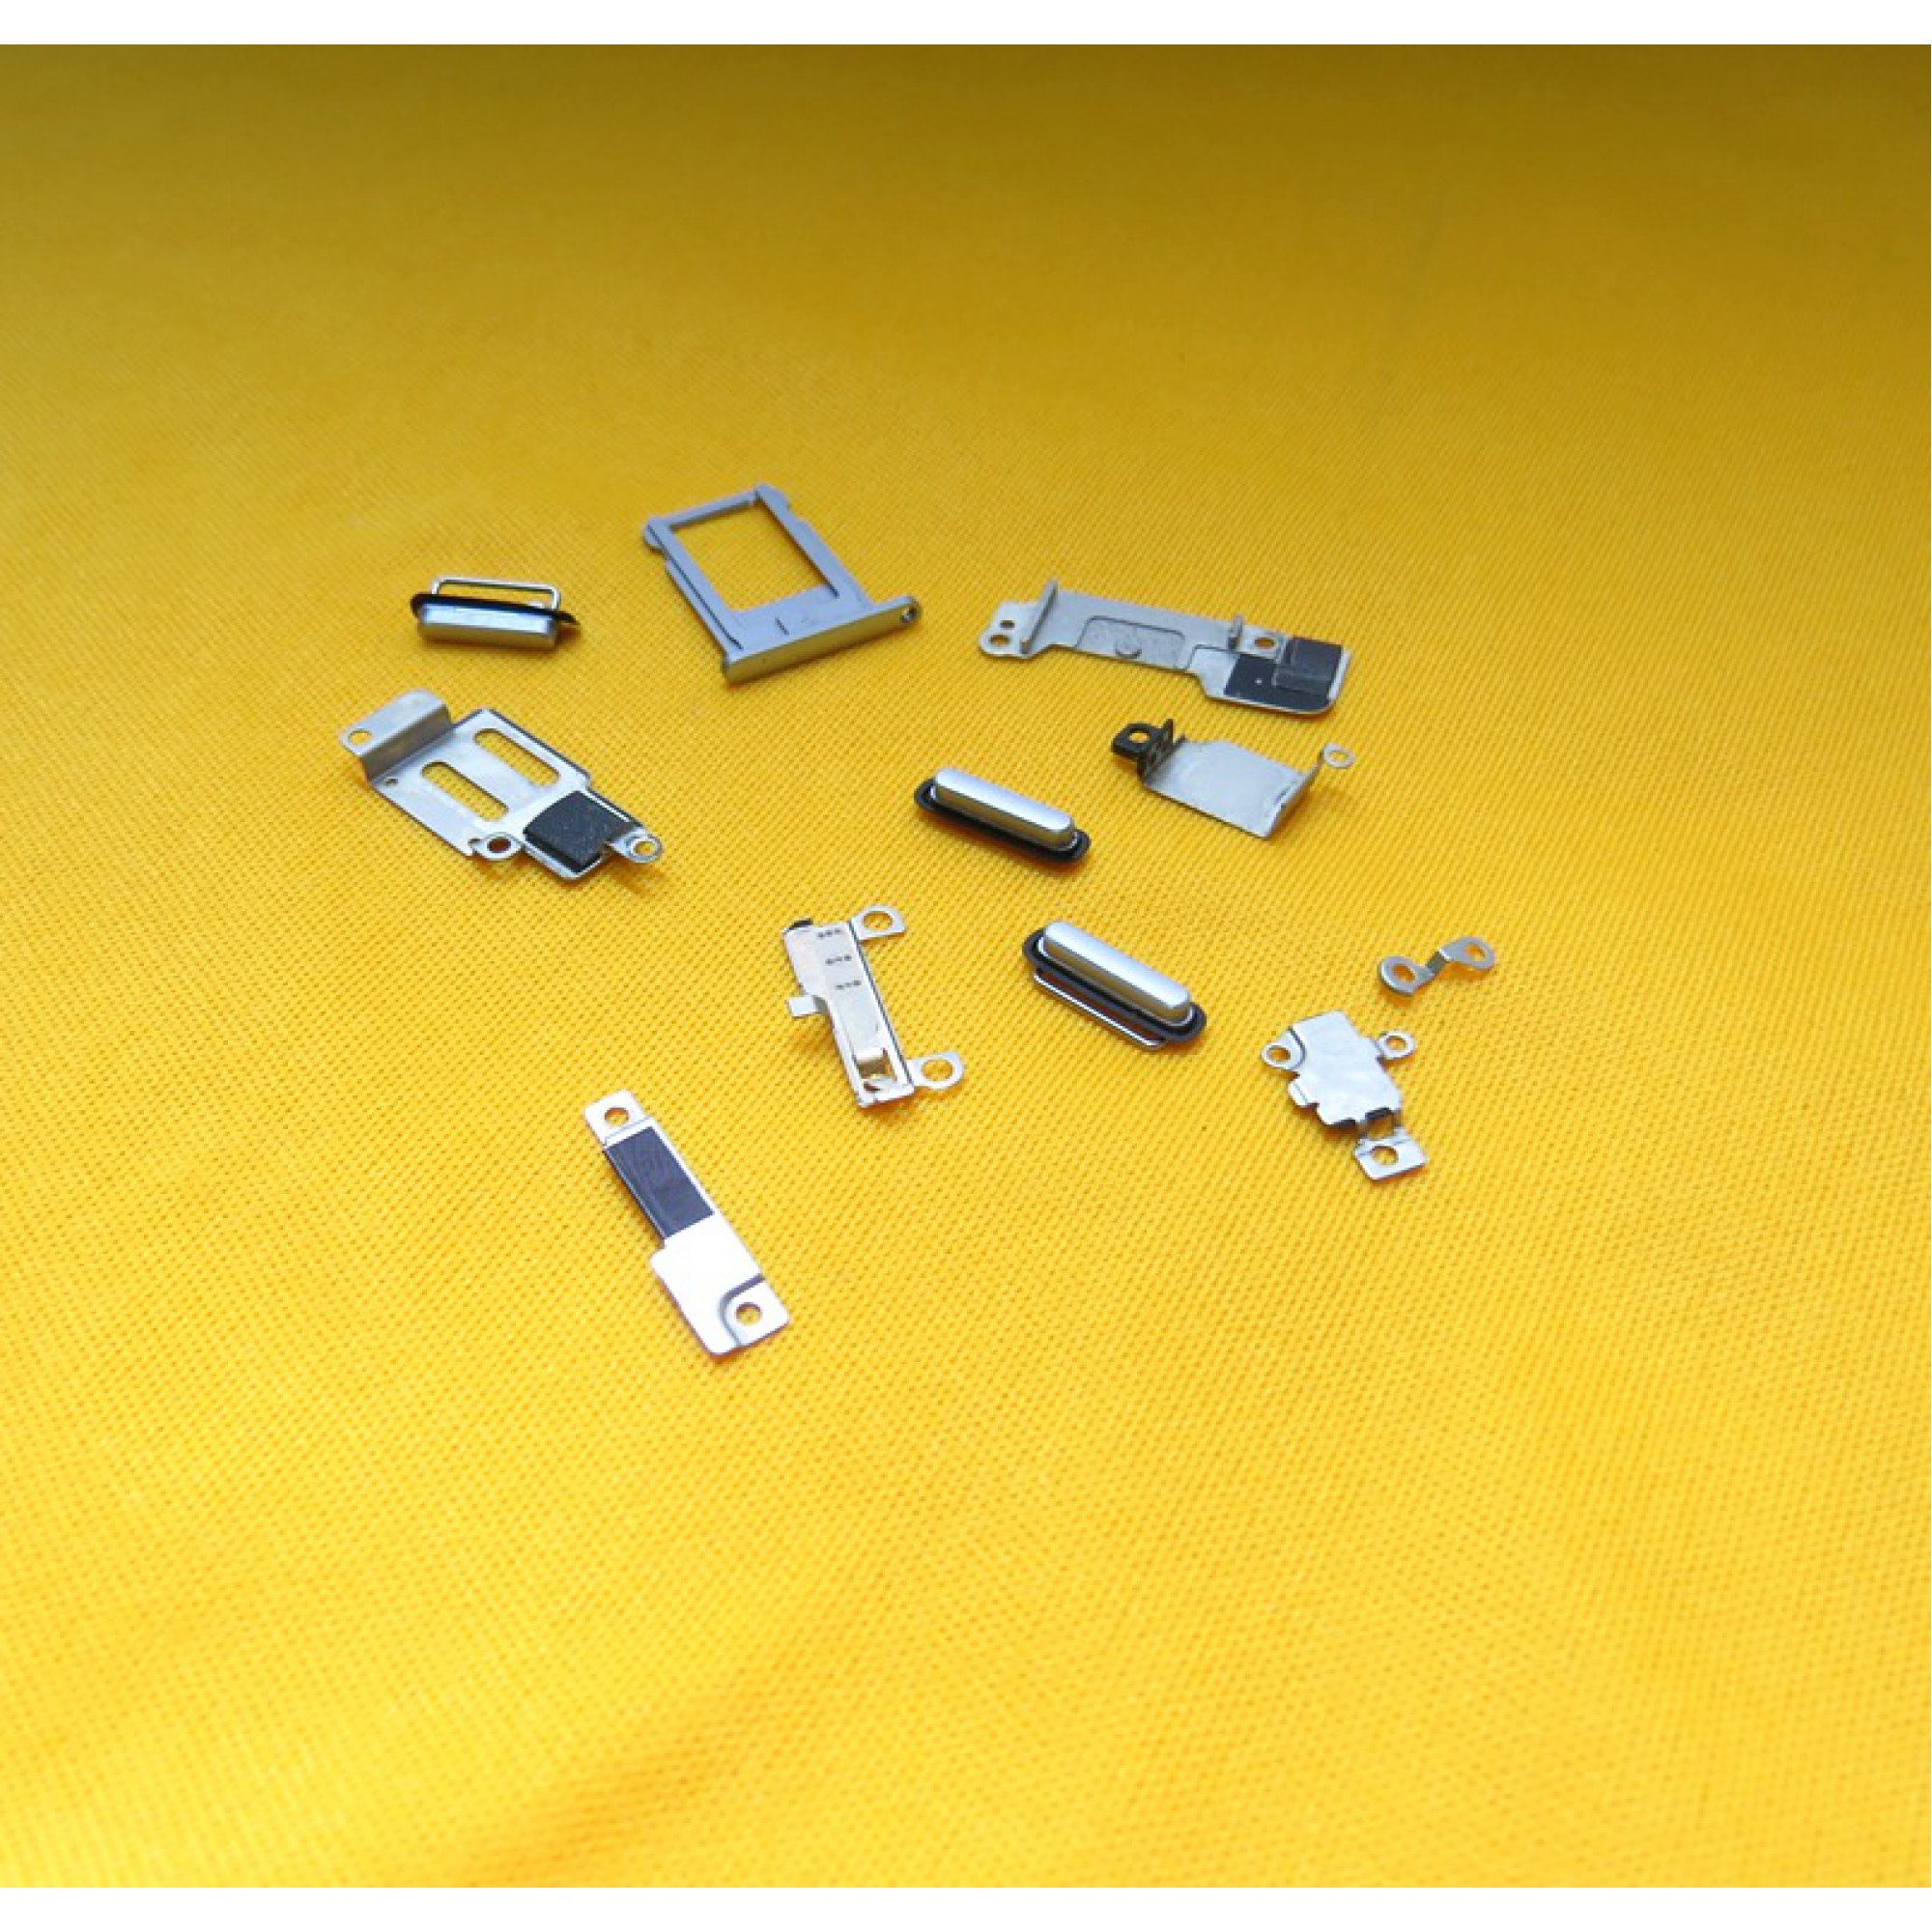 Chasis y  Piezas Varias para Apple iPhone 6 A1549 ipp9